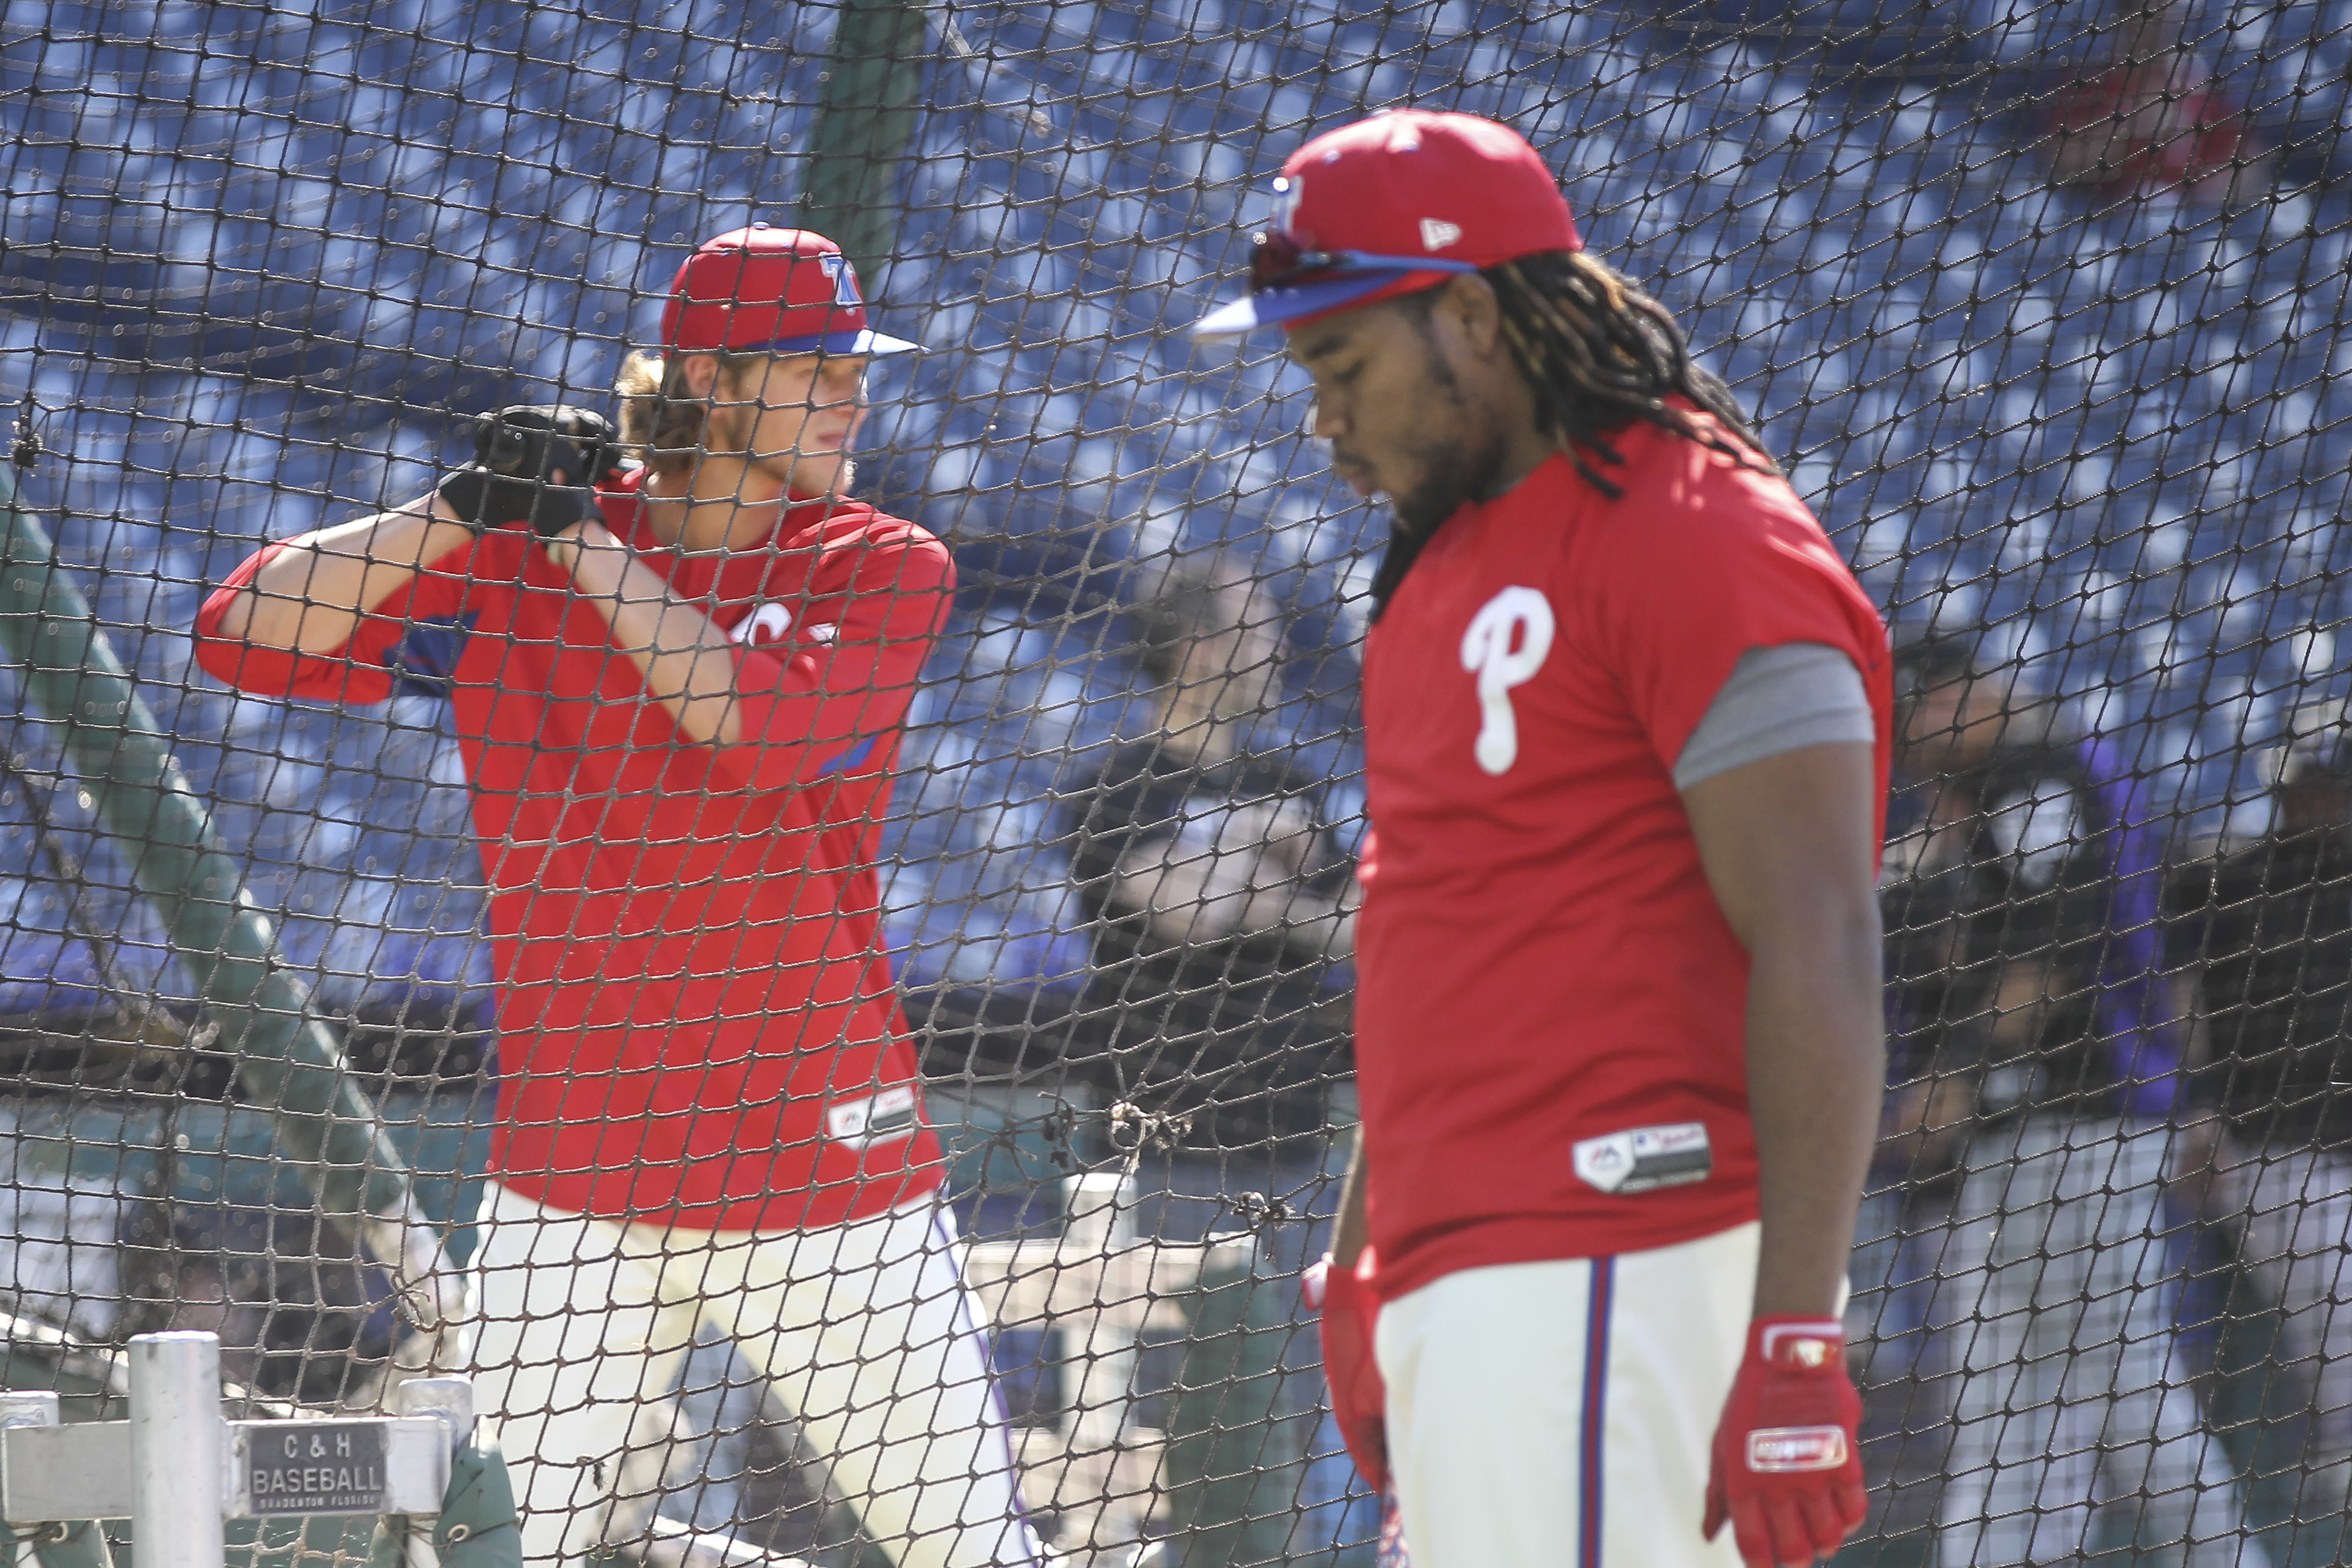 Phillies Maikel Franco waits while 2018 first-round pick Alec Bohm takes batting practice.